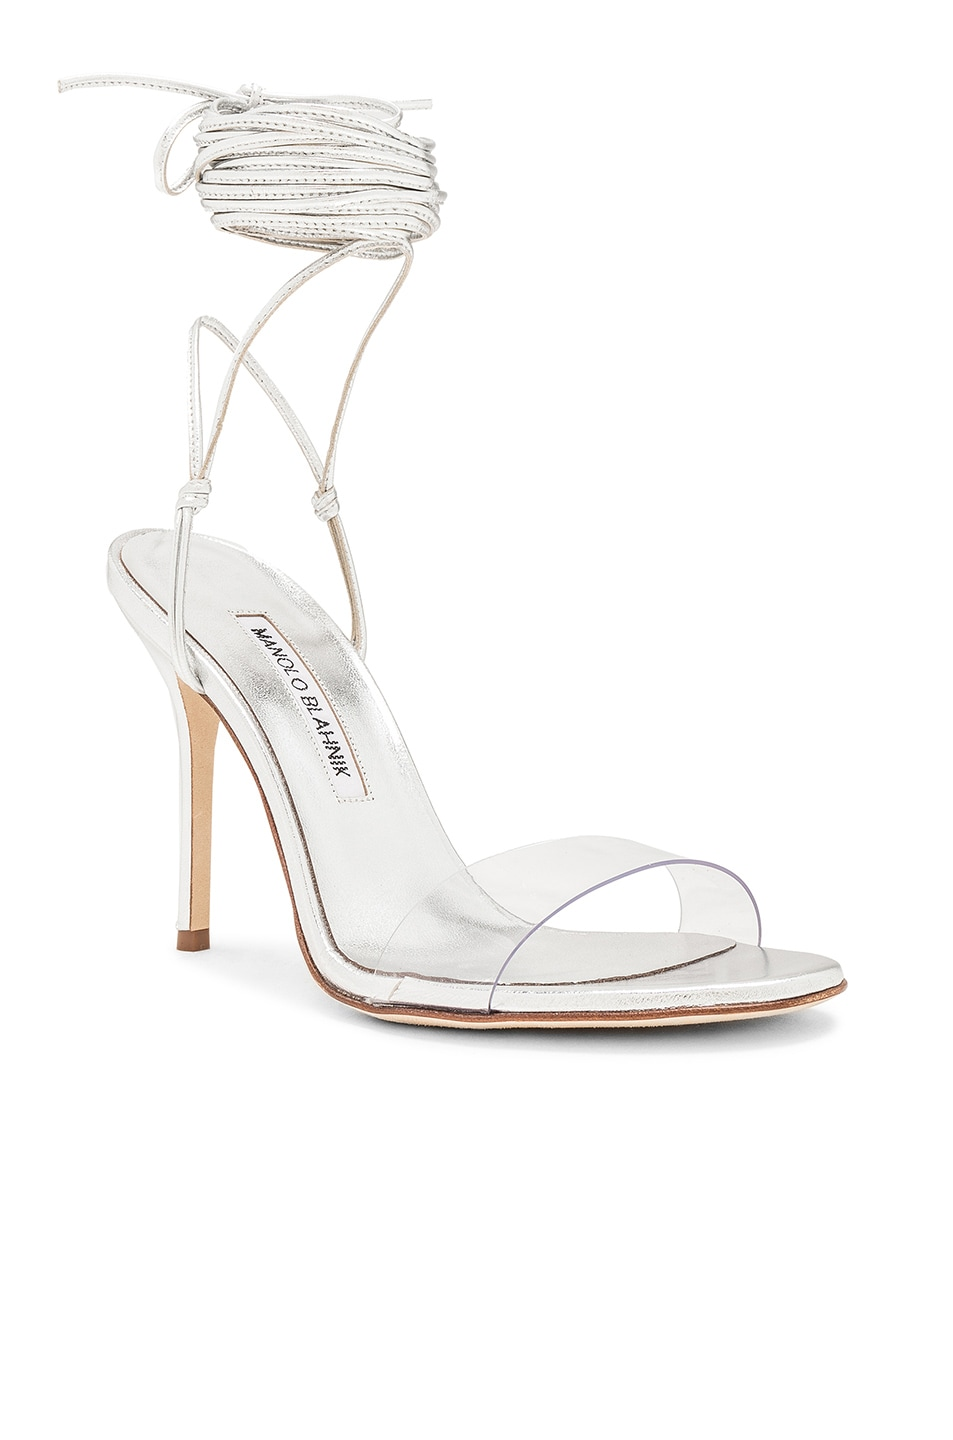 Image 2 of Manolo Blahnik Priscestro 105 Heel in Silver & Clear